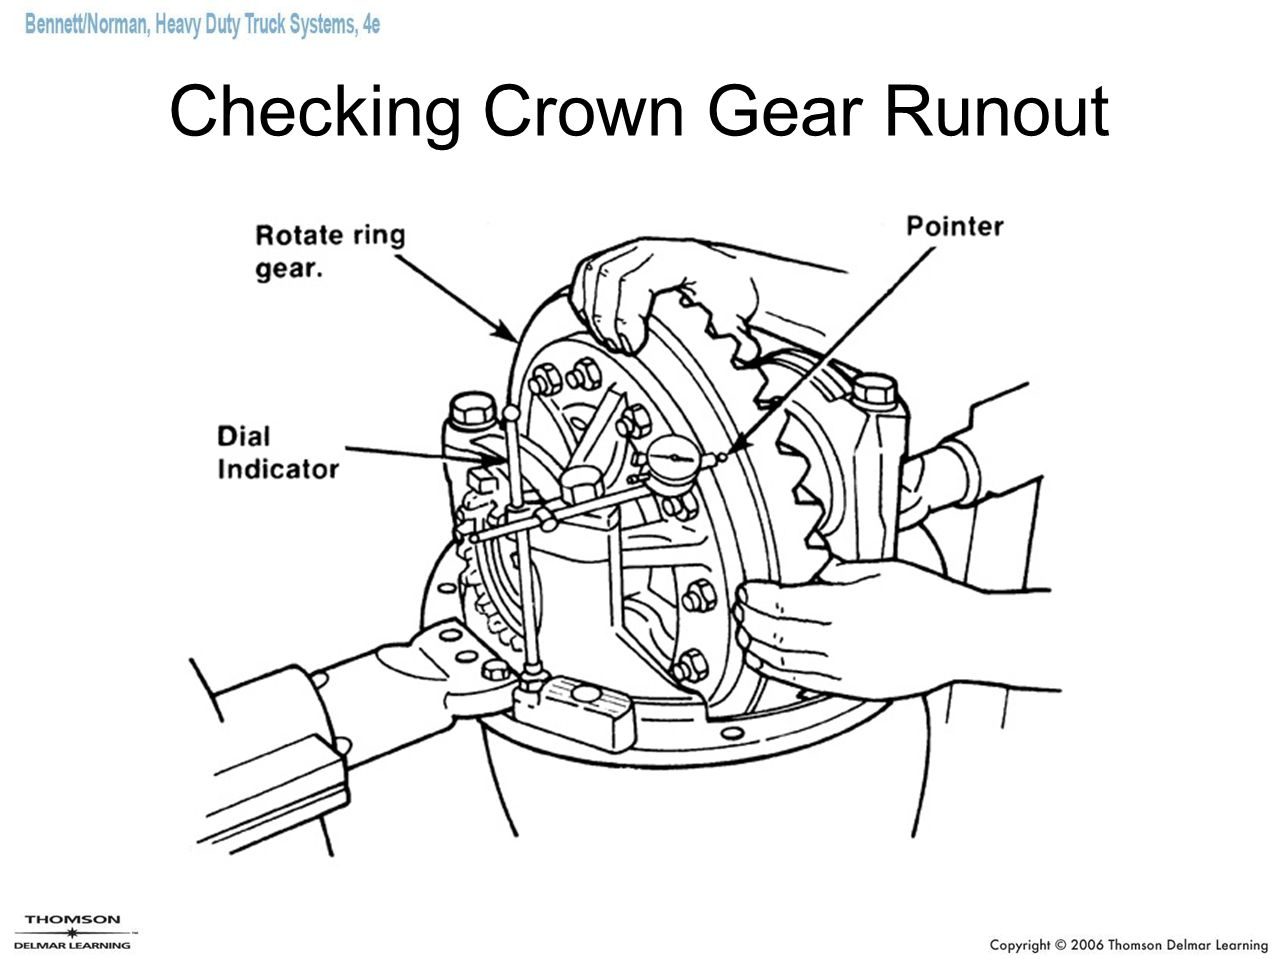 Checking Crown Gear Runout